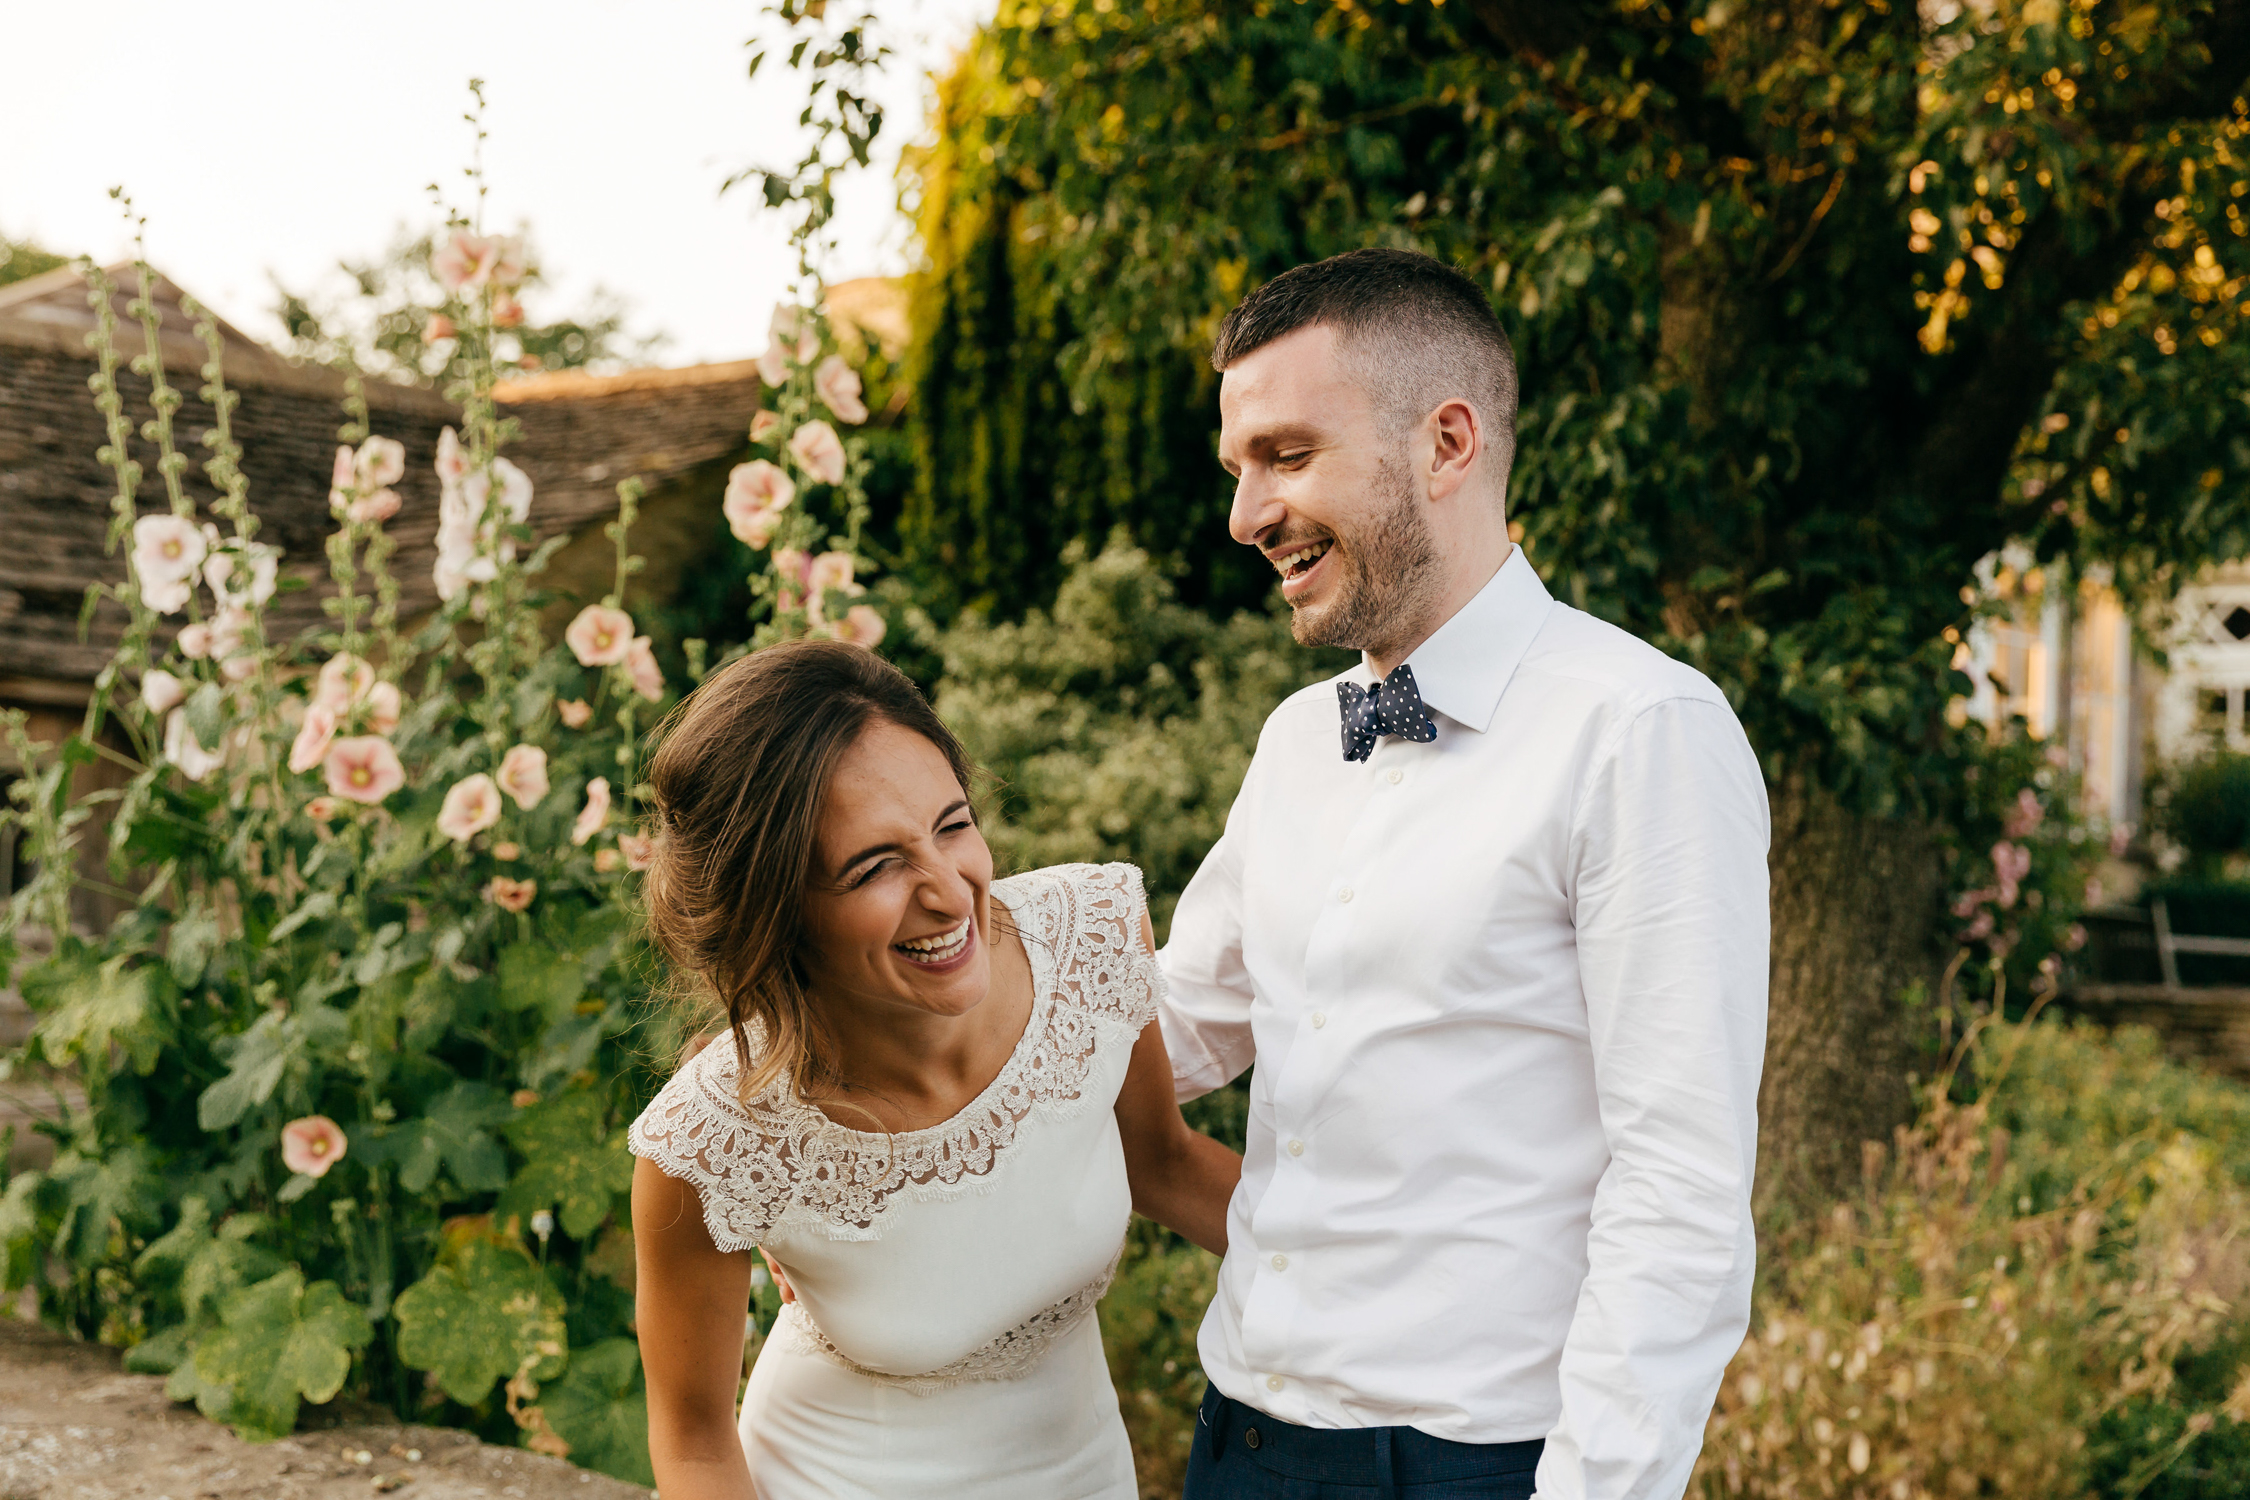 candid wedding photography at oxleaze barn cotswolds